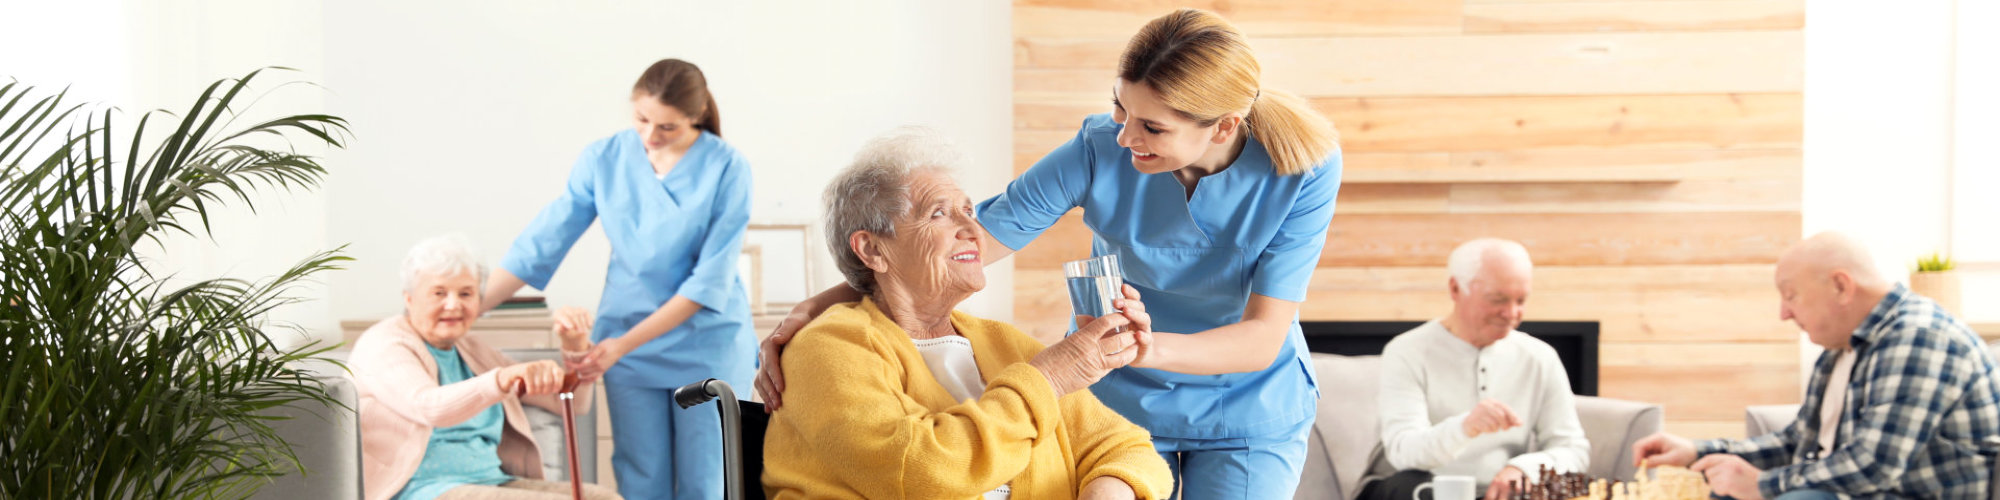 caregiver taking care her elderly